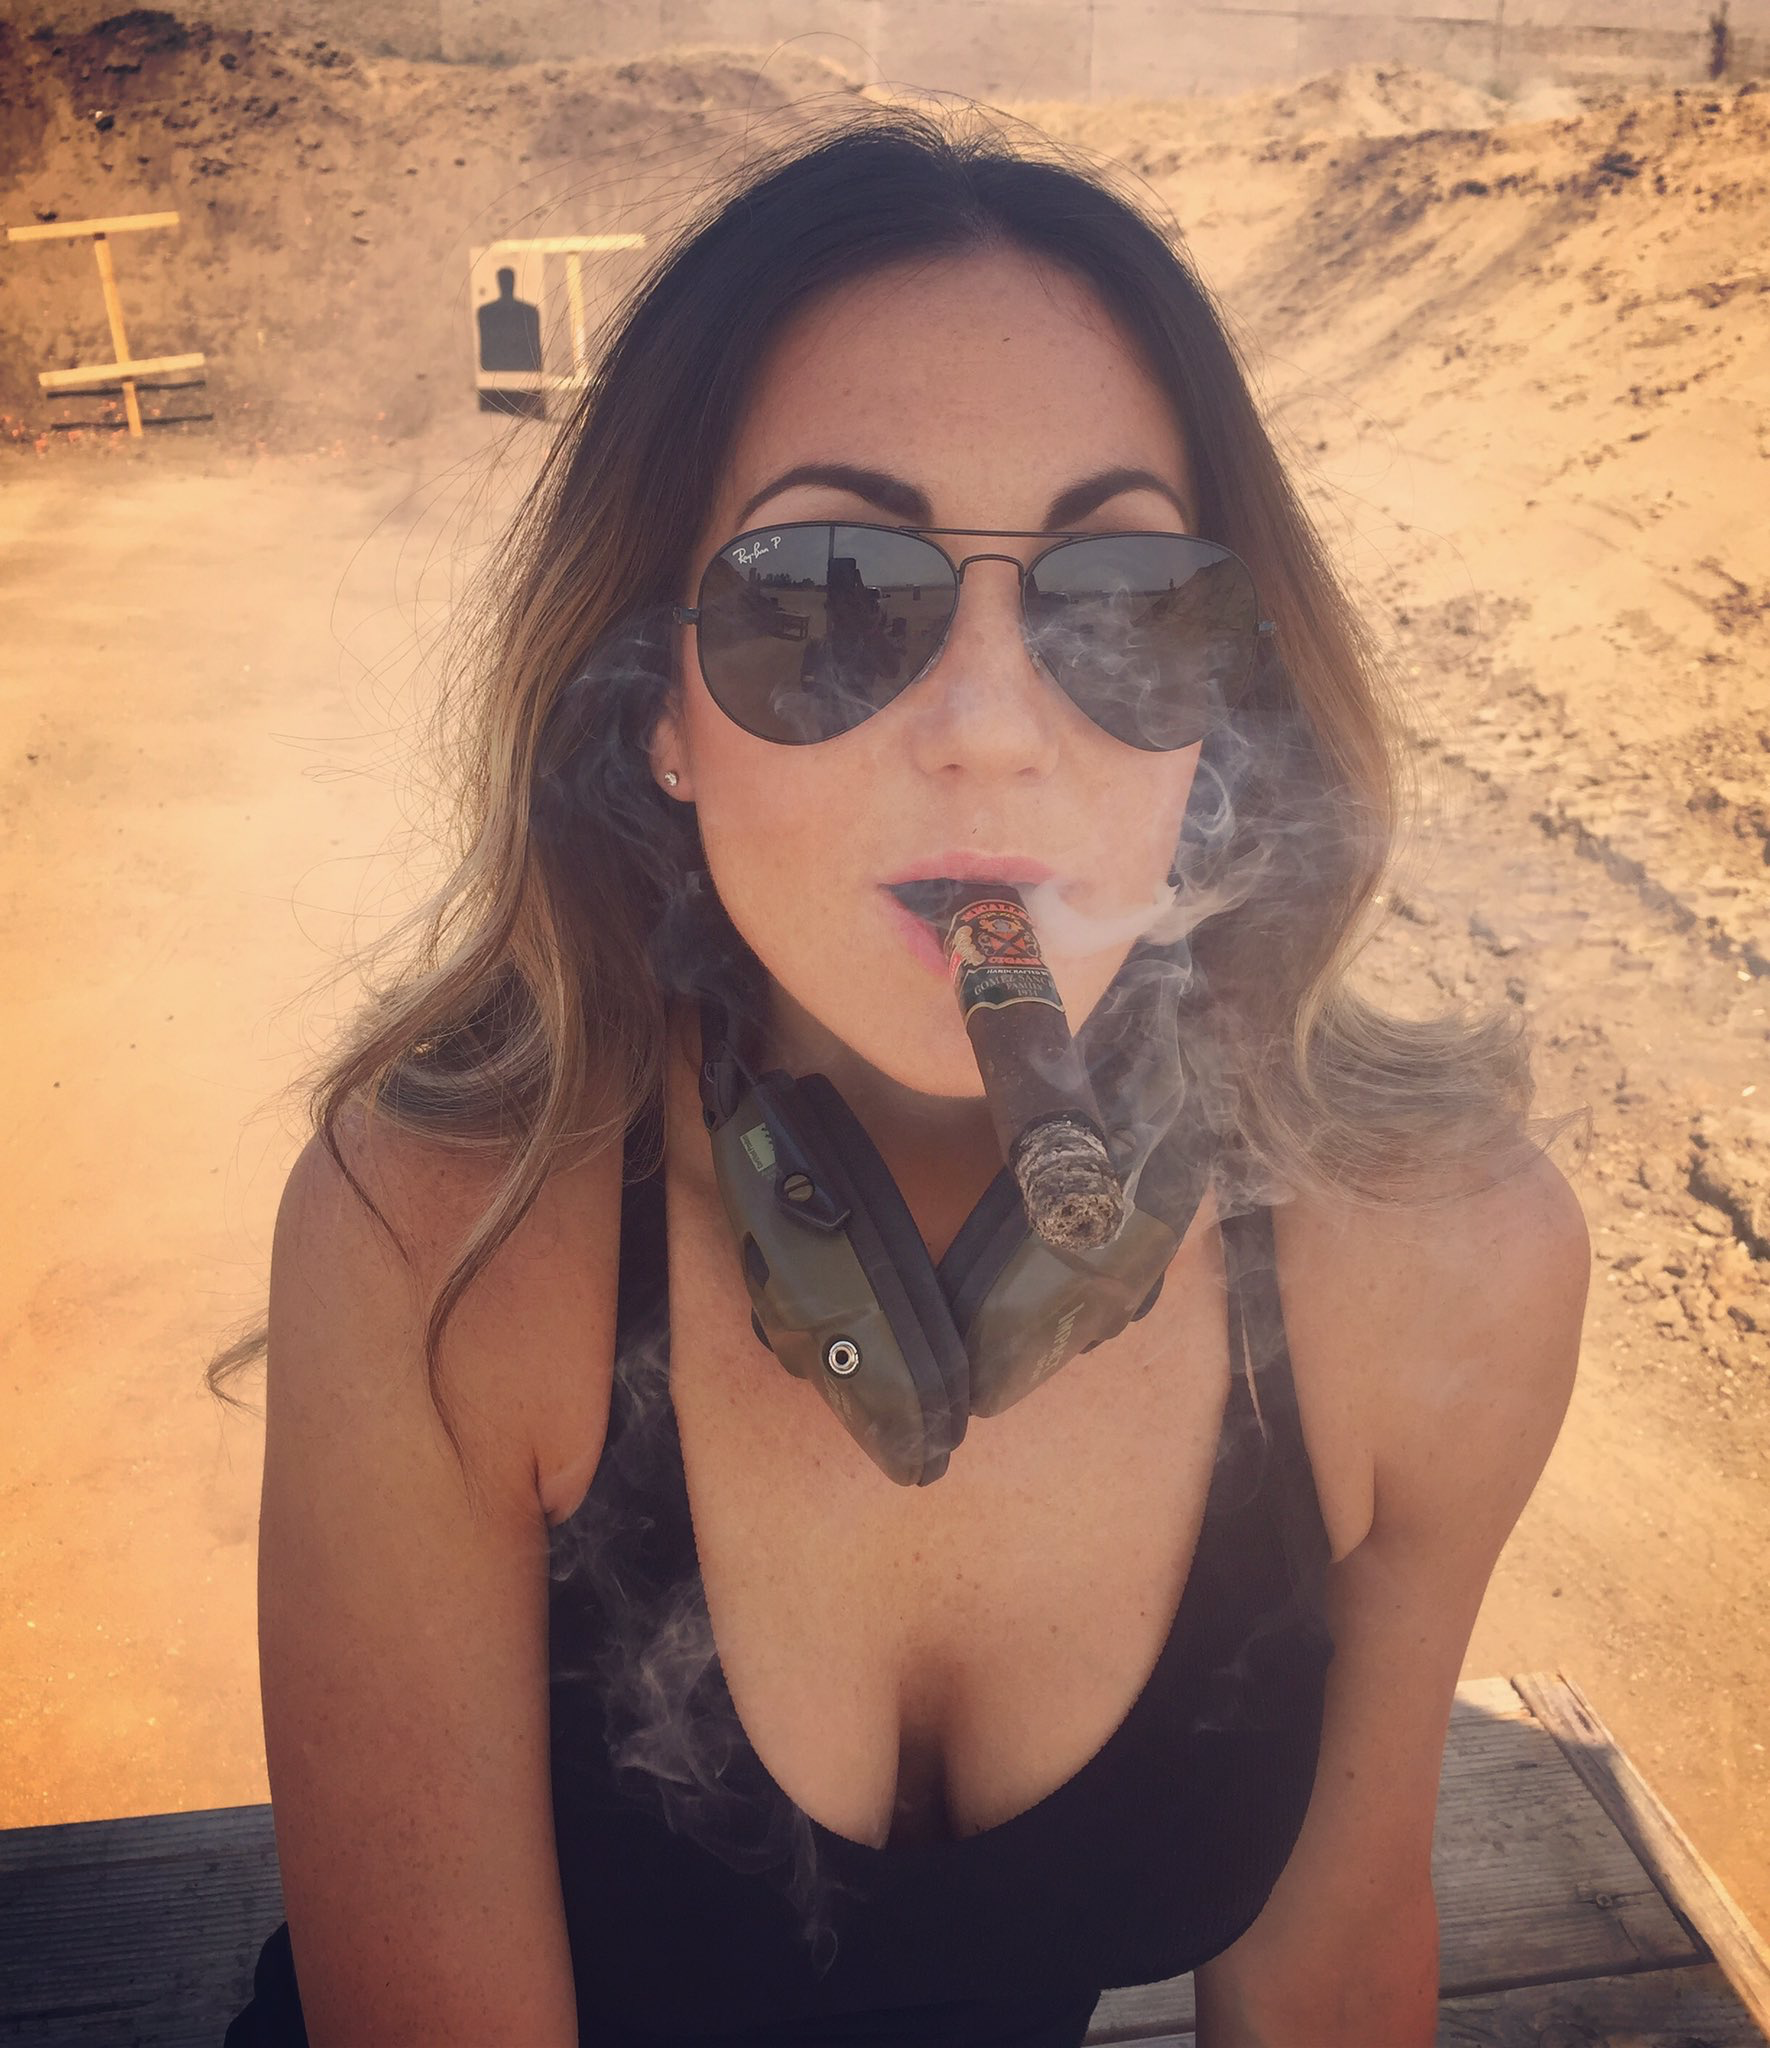 Milf enjoys a smoke